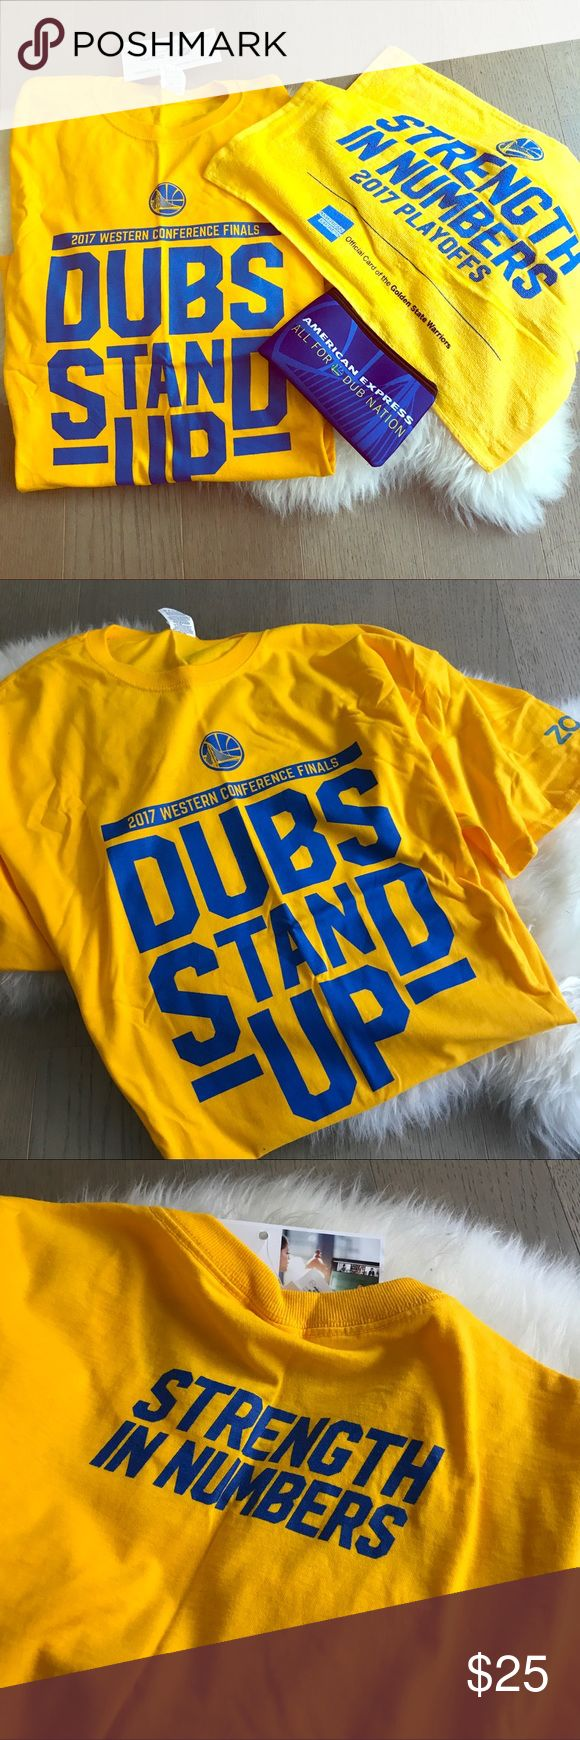 Warriors dub nation finals tshirt, towel, pouch 2017 NBA champions --  WARRIORS 💙💛 dubs stand up western conference finals t shirt, strength in numbers playoff towel, and dub nation pouch! T shirt is one size, size XL (can be cut or tied for ladies) Brand new with tags and only available from the 2017 playoffs/ finals games! These are great to add to your fan collection especially since the warriors are the 2017 NBA champs this year! Can be sold separately if you'd like. Warriors Tops Tees…